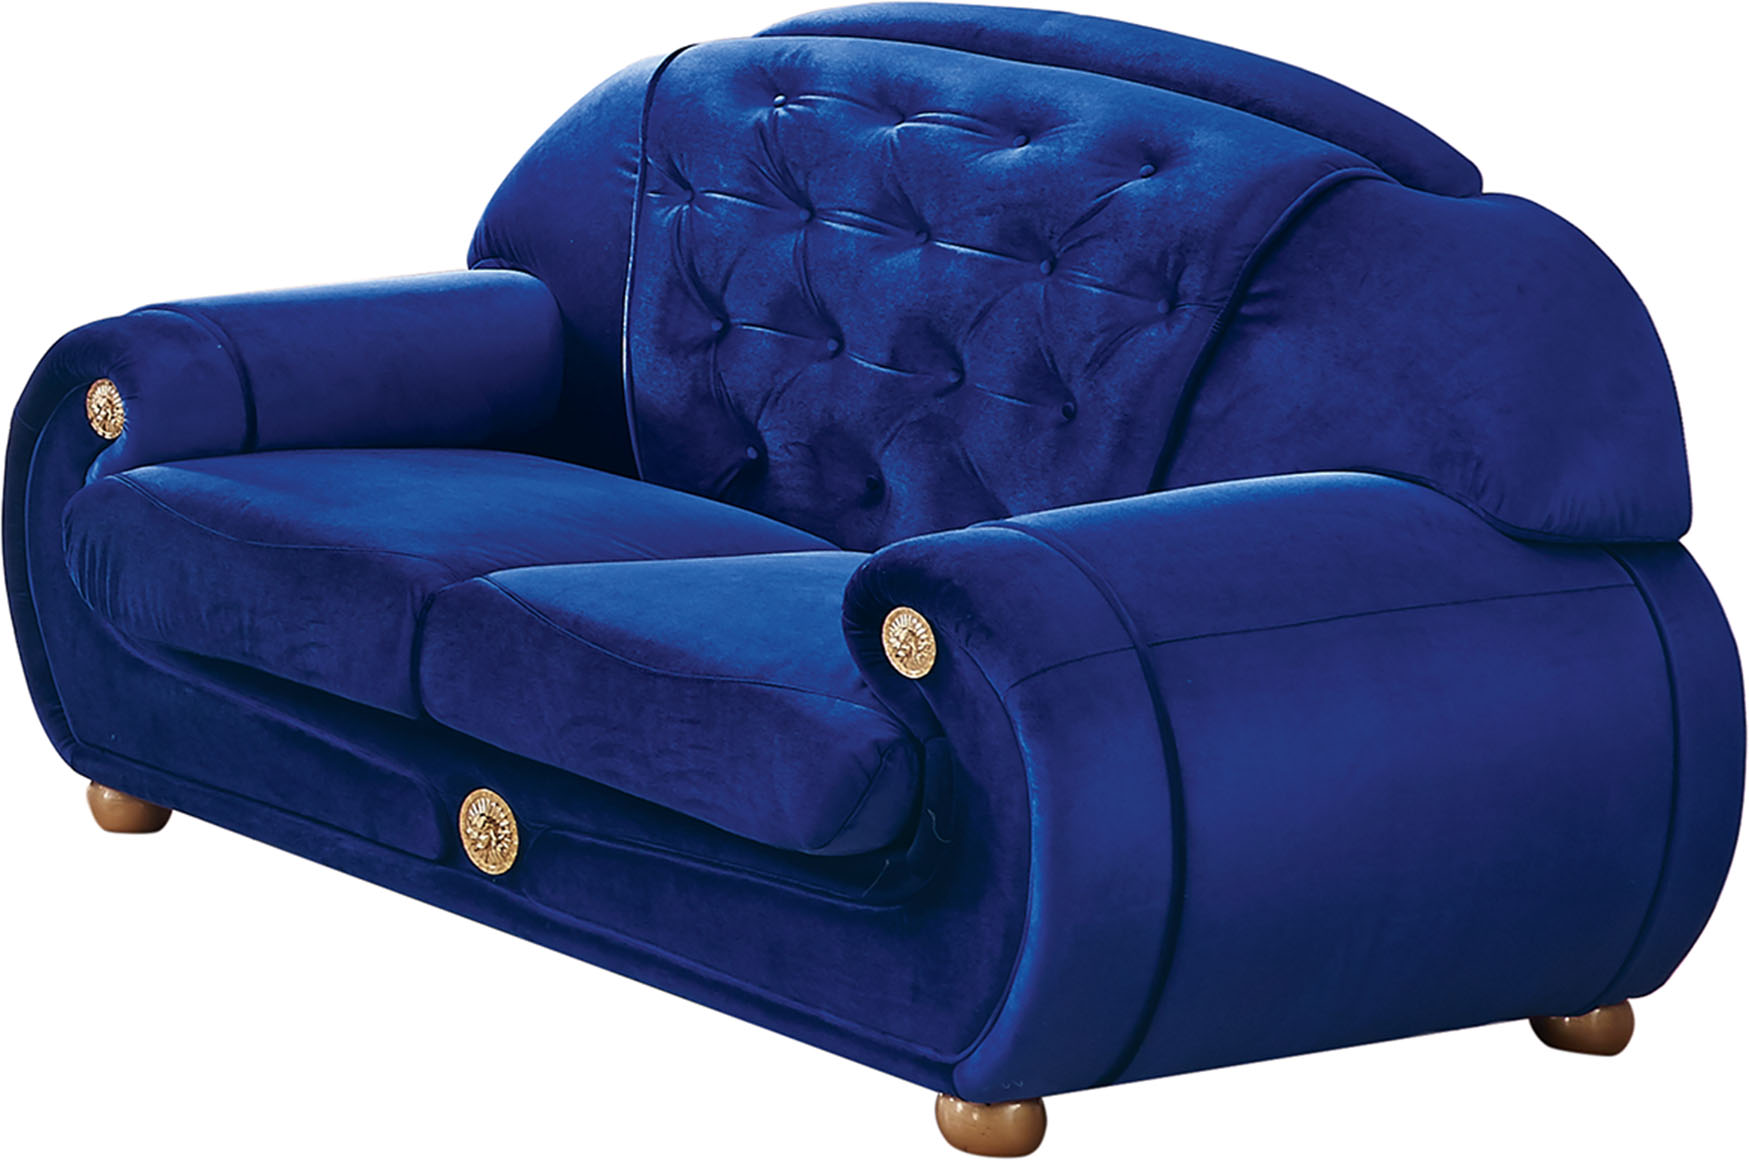 Giza Fabric In Dark Blue Sofas Loveseats And Chairs